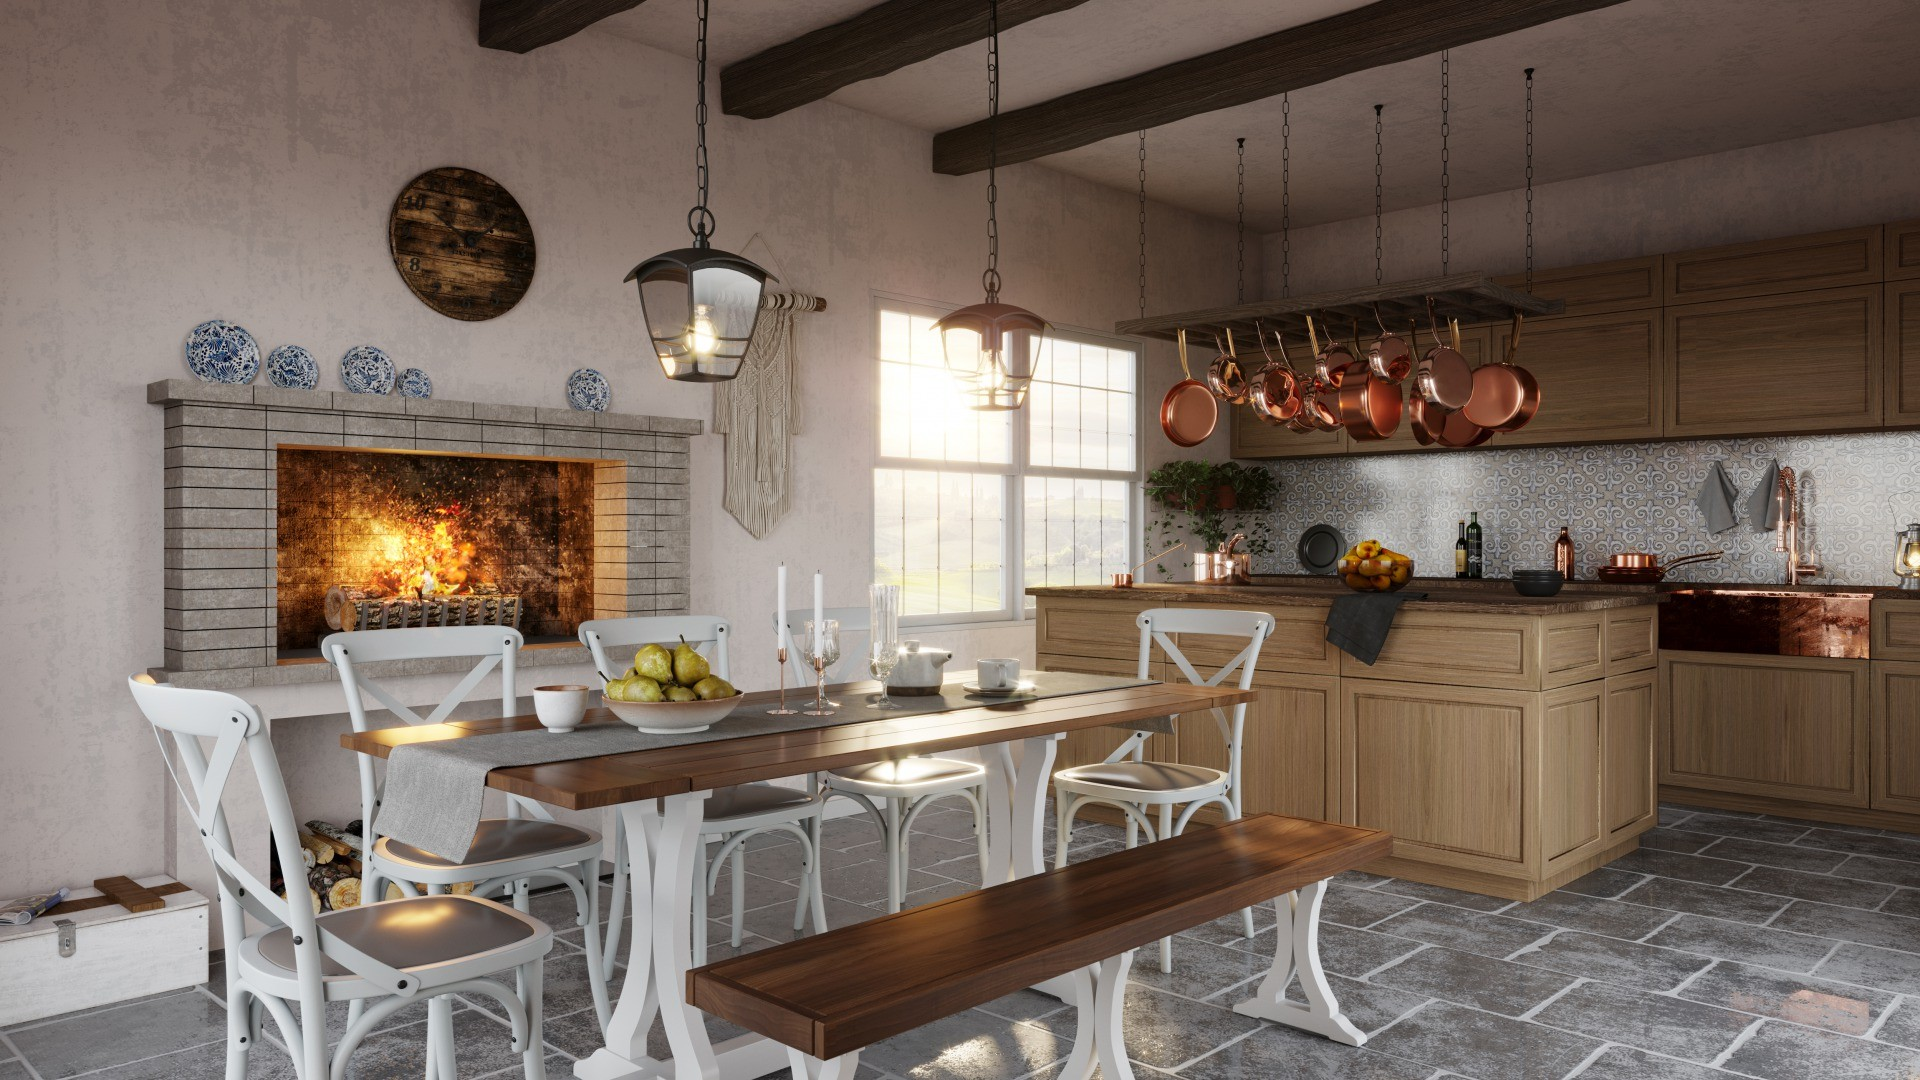 s_Country farmhouse kitchen